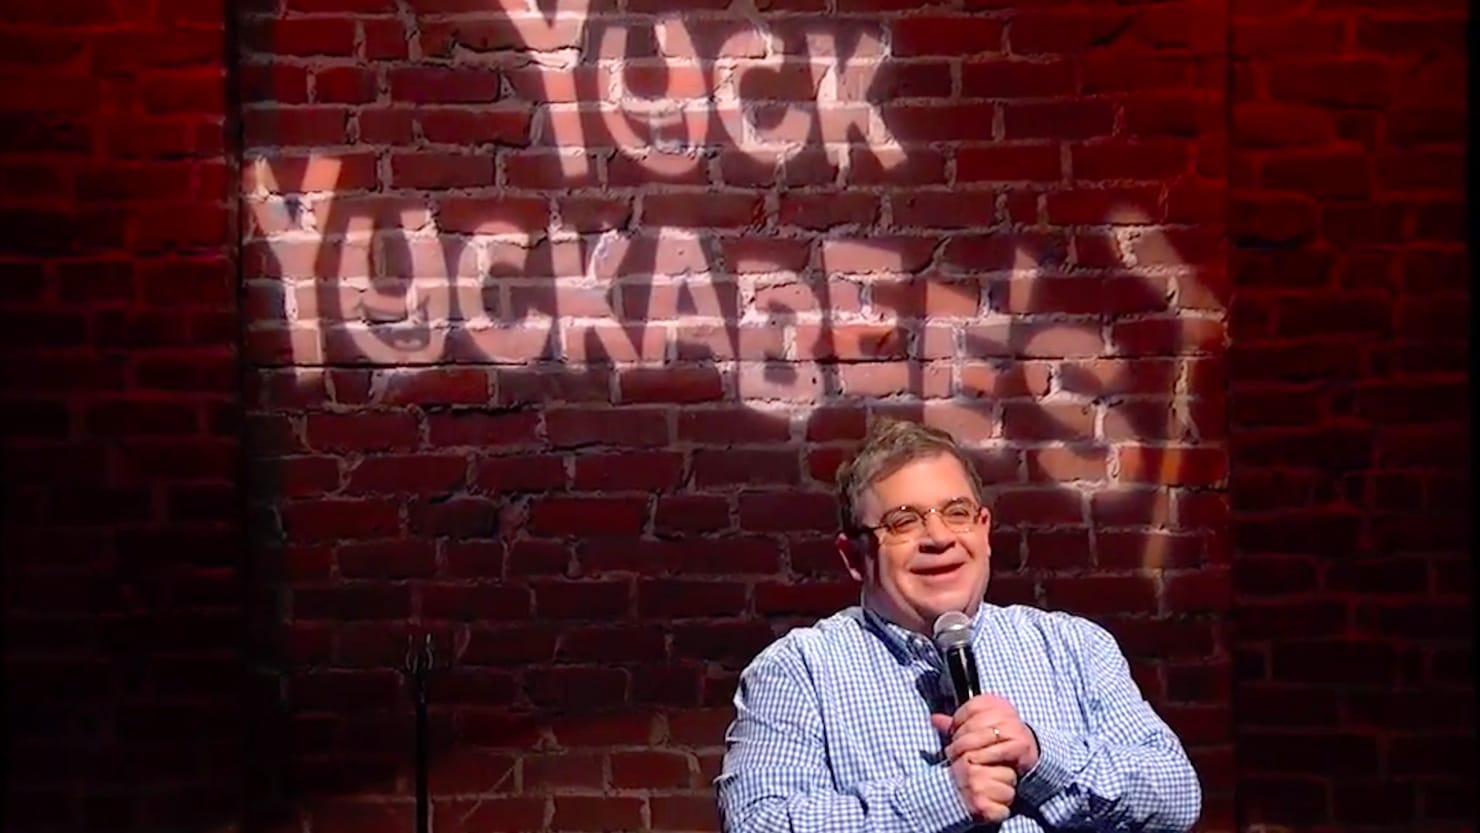 Patton oswalt midget jokes